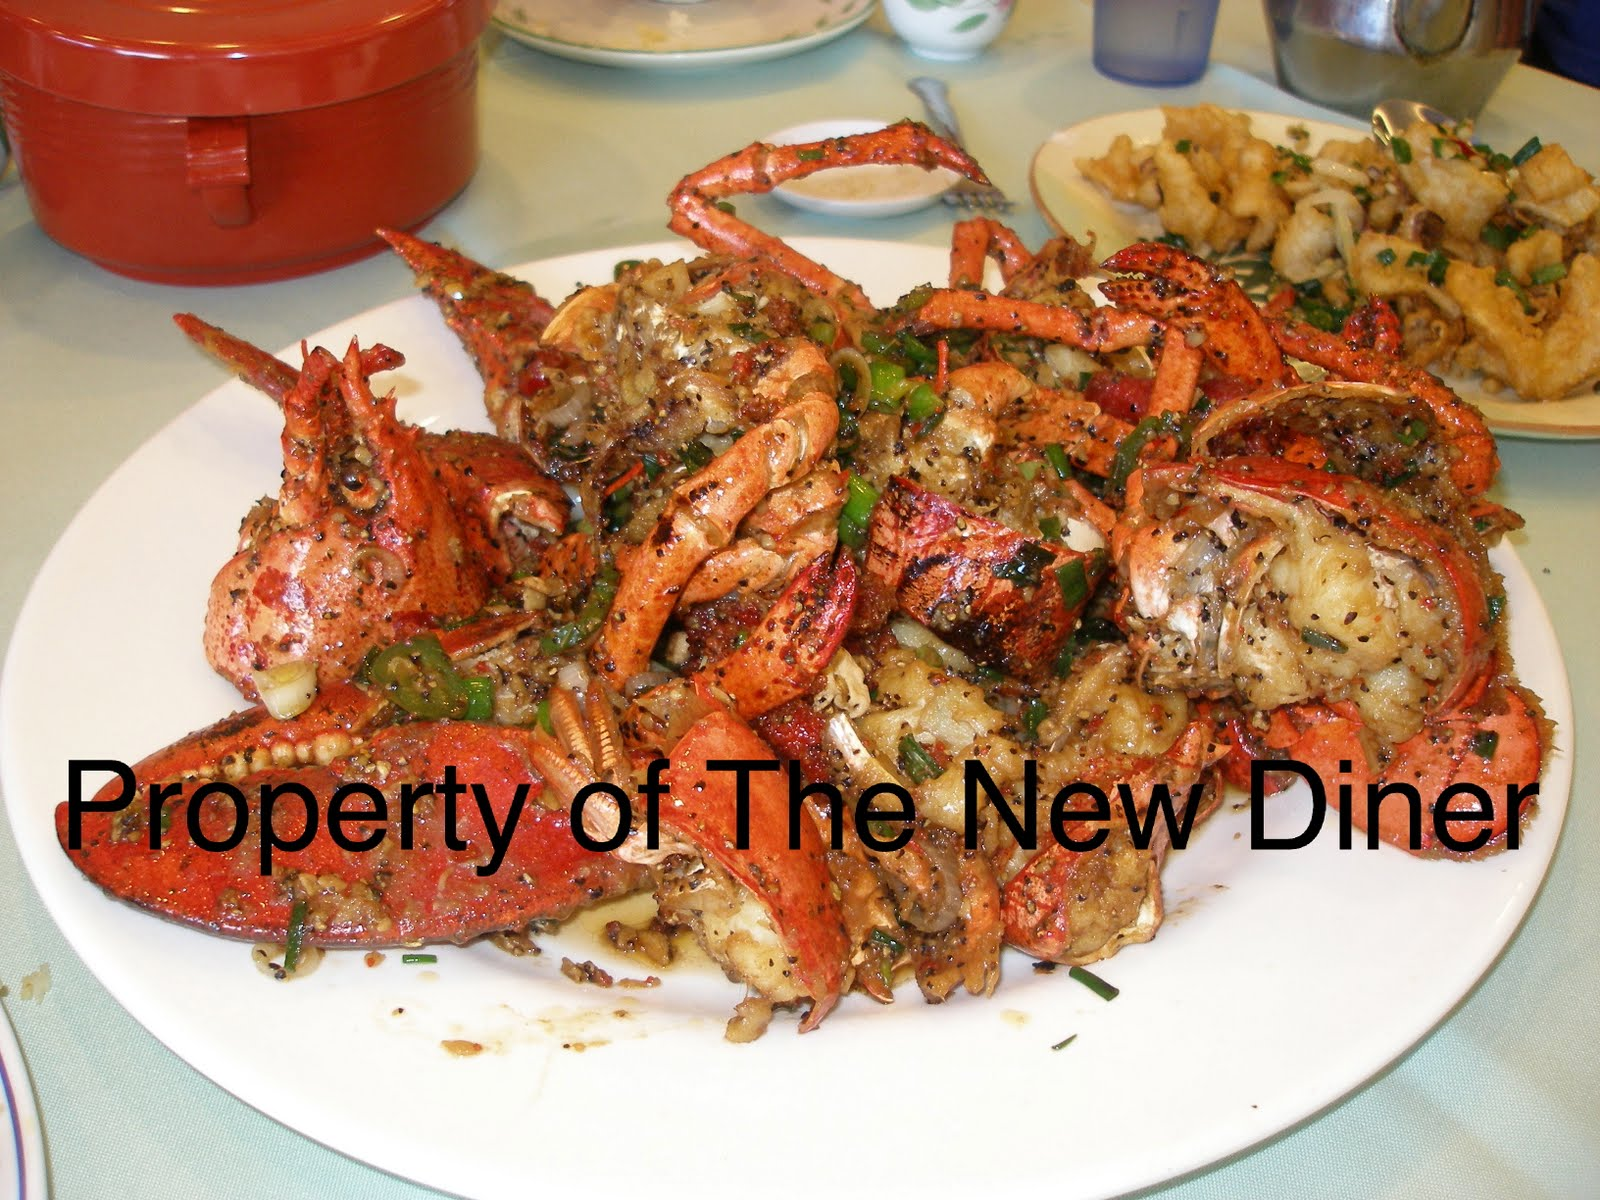 The New Diner: Newport Seafood